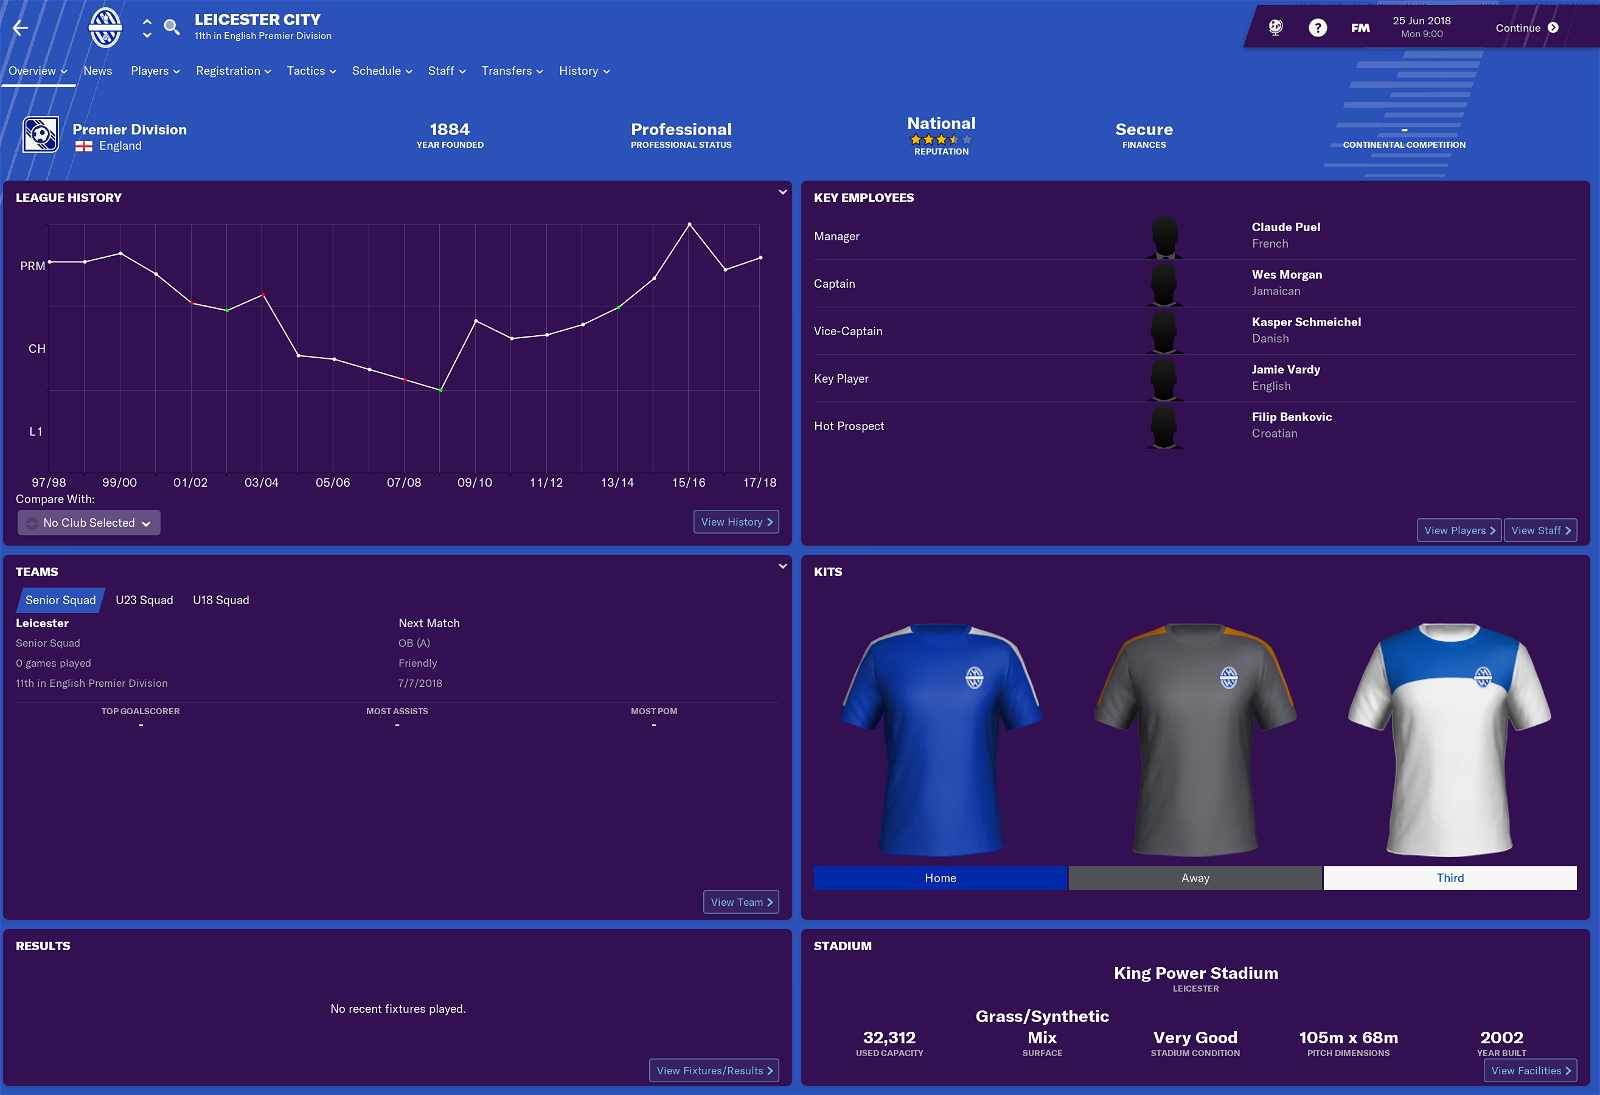 FM19 TEAM GUIDE LEICESTER CITY